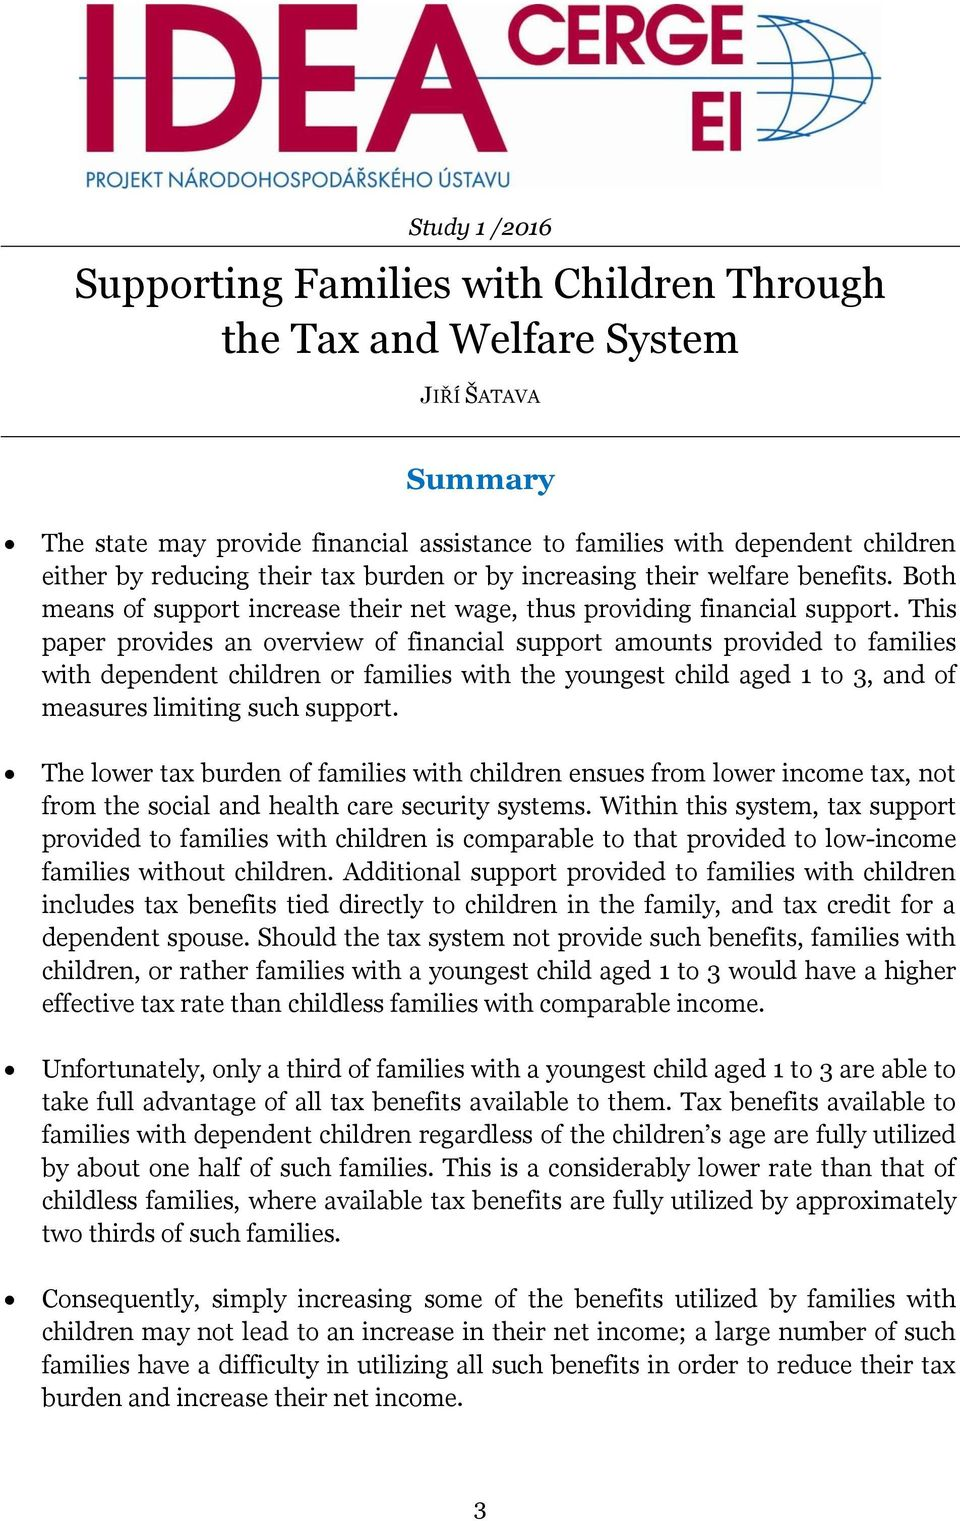 This paper provides an overview of financial support amounts provided to families with dependent children or families with the youngest child aged 1 to 3, and of measures limiting such support.